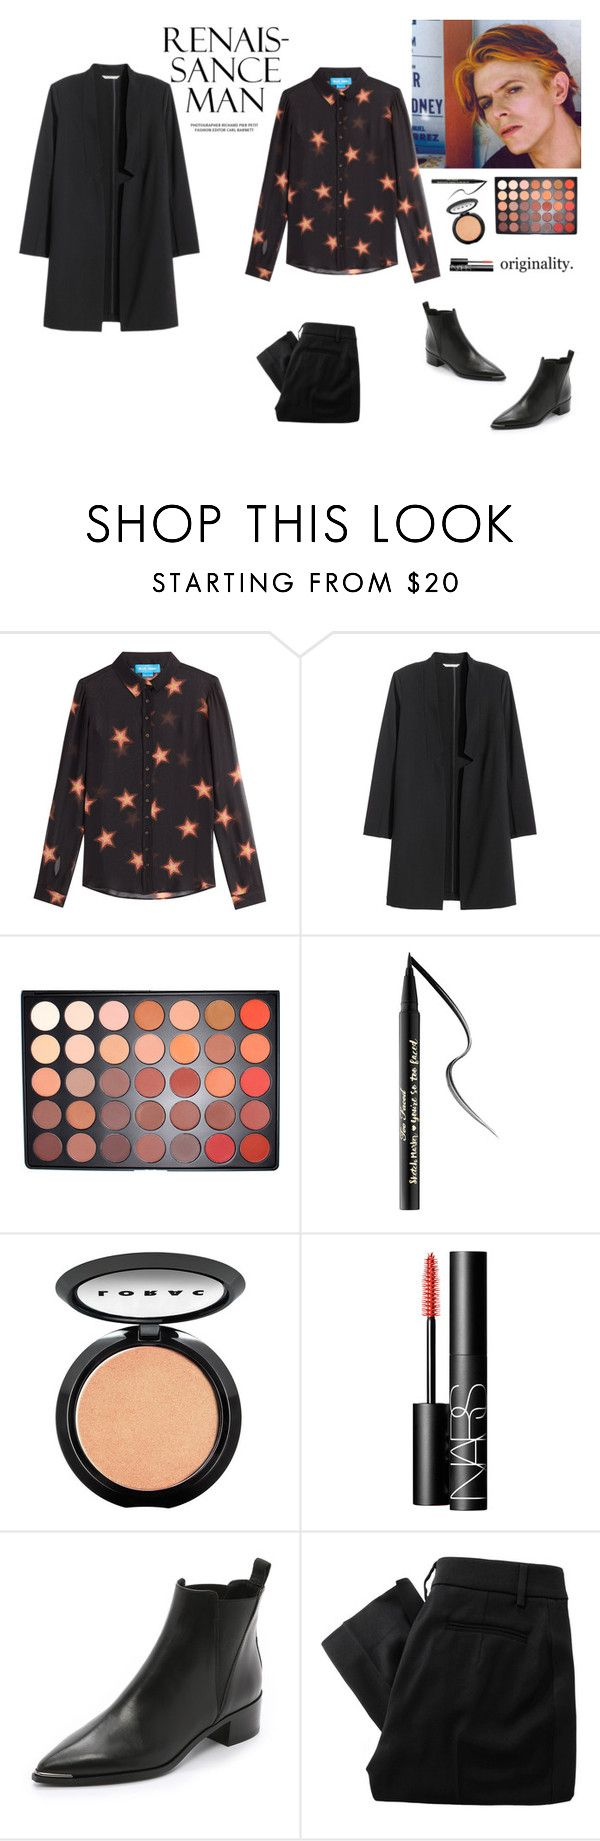 """Lady Grinning Soul-David Bowie"" by princesssophia ❤ liked on Polyvore featuring M.i.h Jeans, H&M, Too Faced Cosmetics, LORAC, NARS Cosmetics, Acne Studios and Vivienne Westwood Red Label"